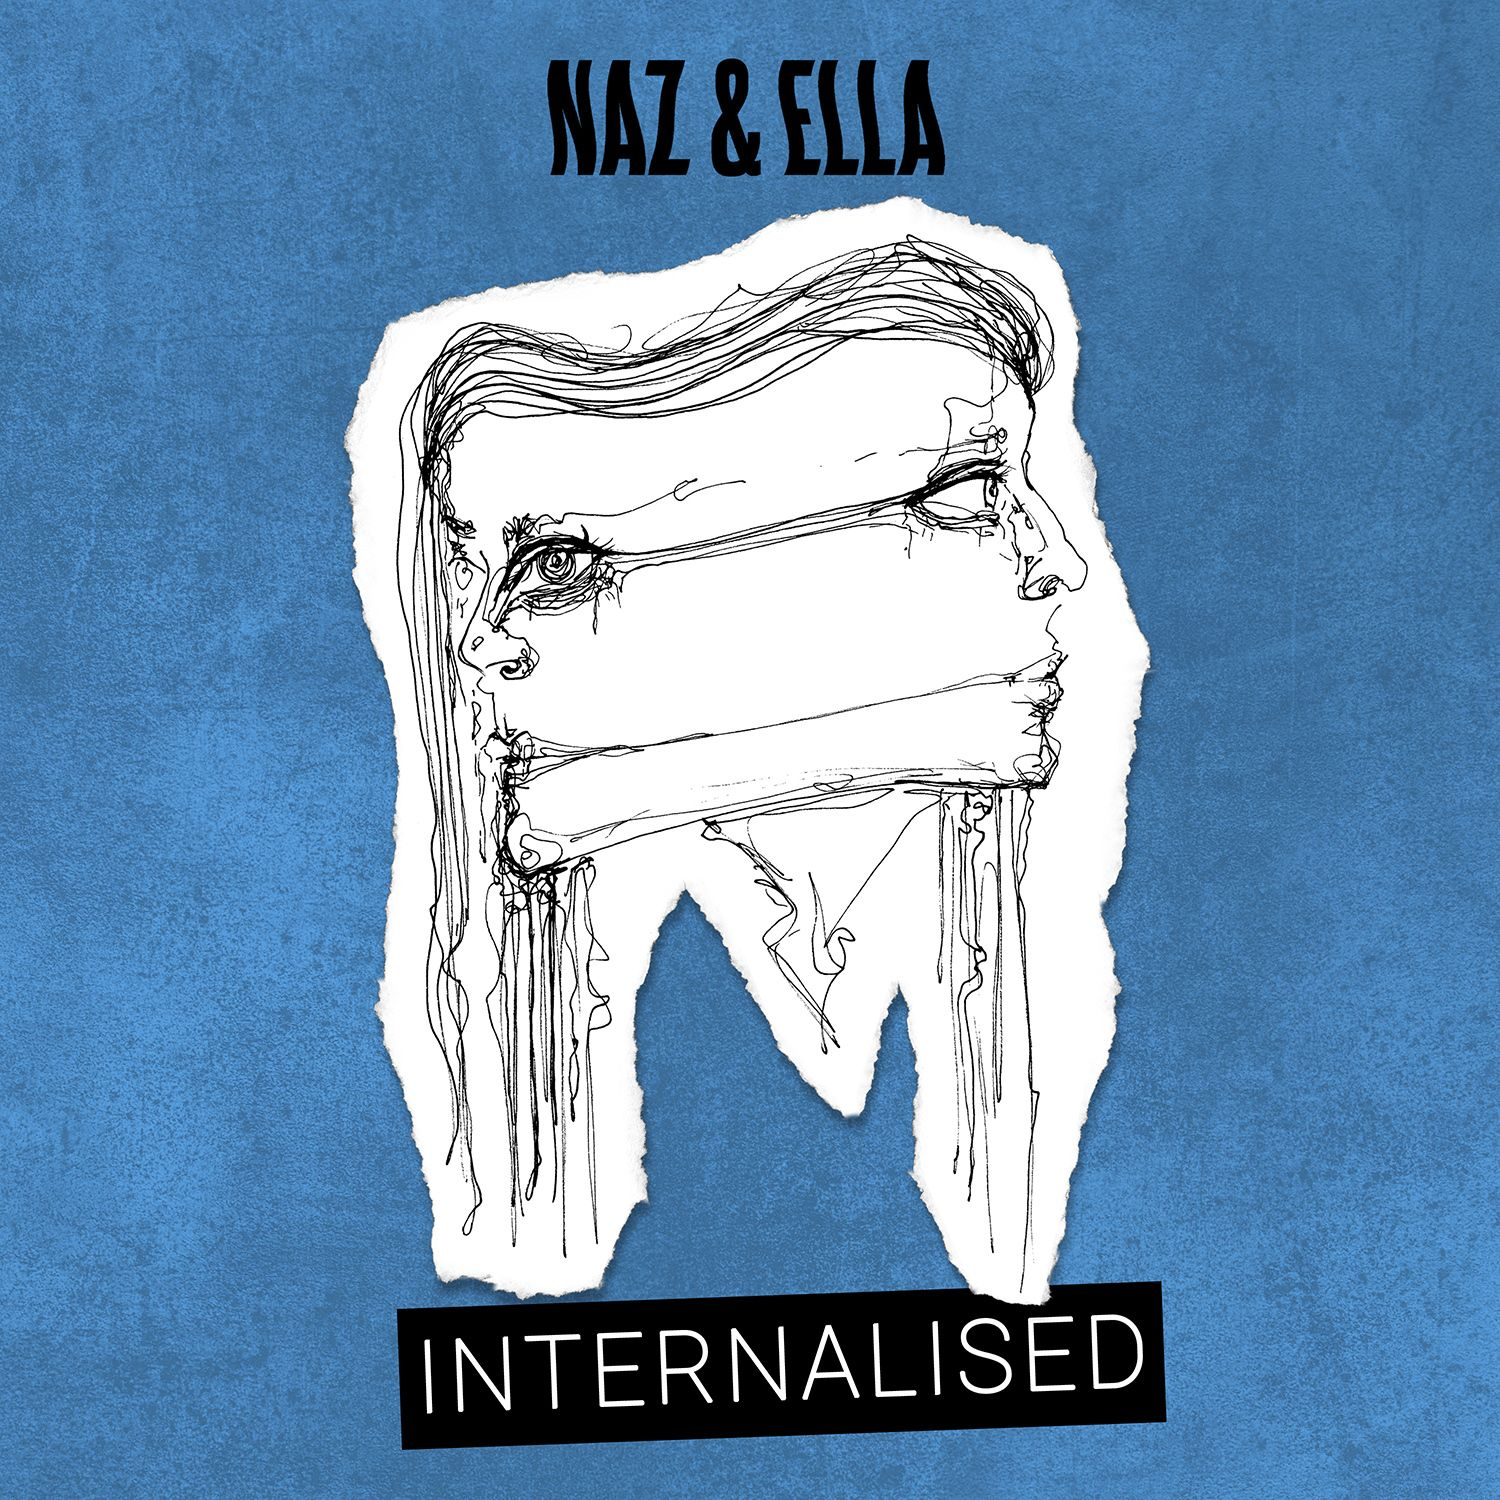 Music Feature: 'Internalised', A Soft Ballad About Self-Acceptance